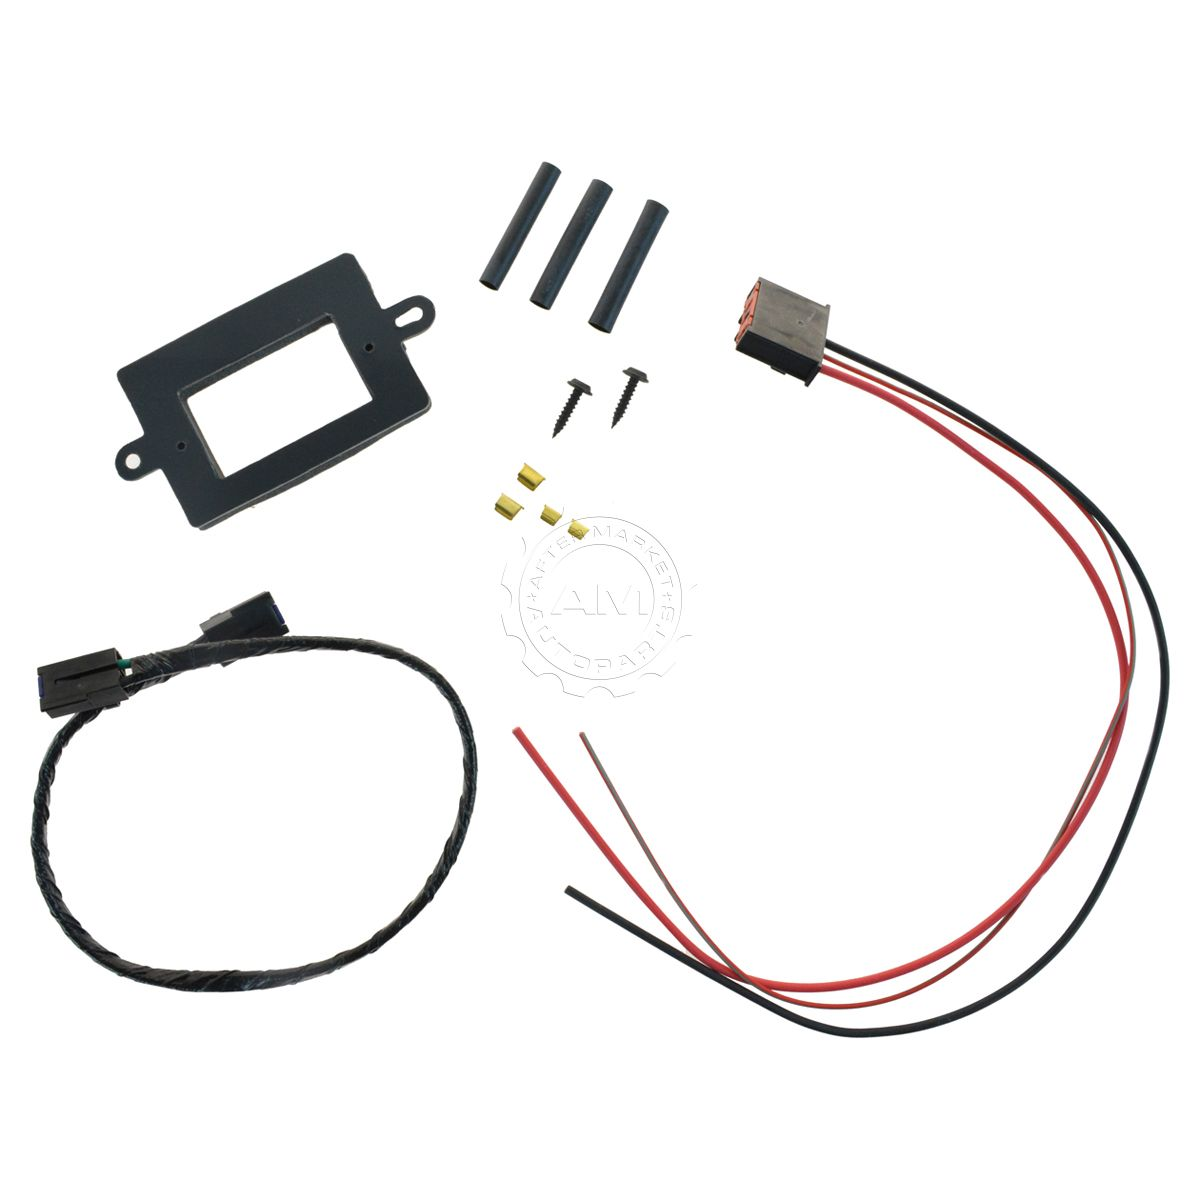 hight resolution of atc blower motor resistor wiring harness upgrade kit for 99 04 grand cherokee